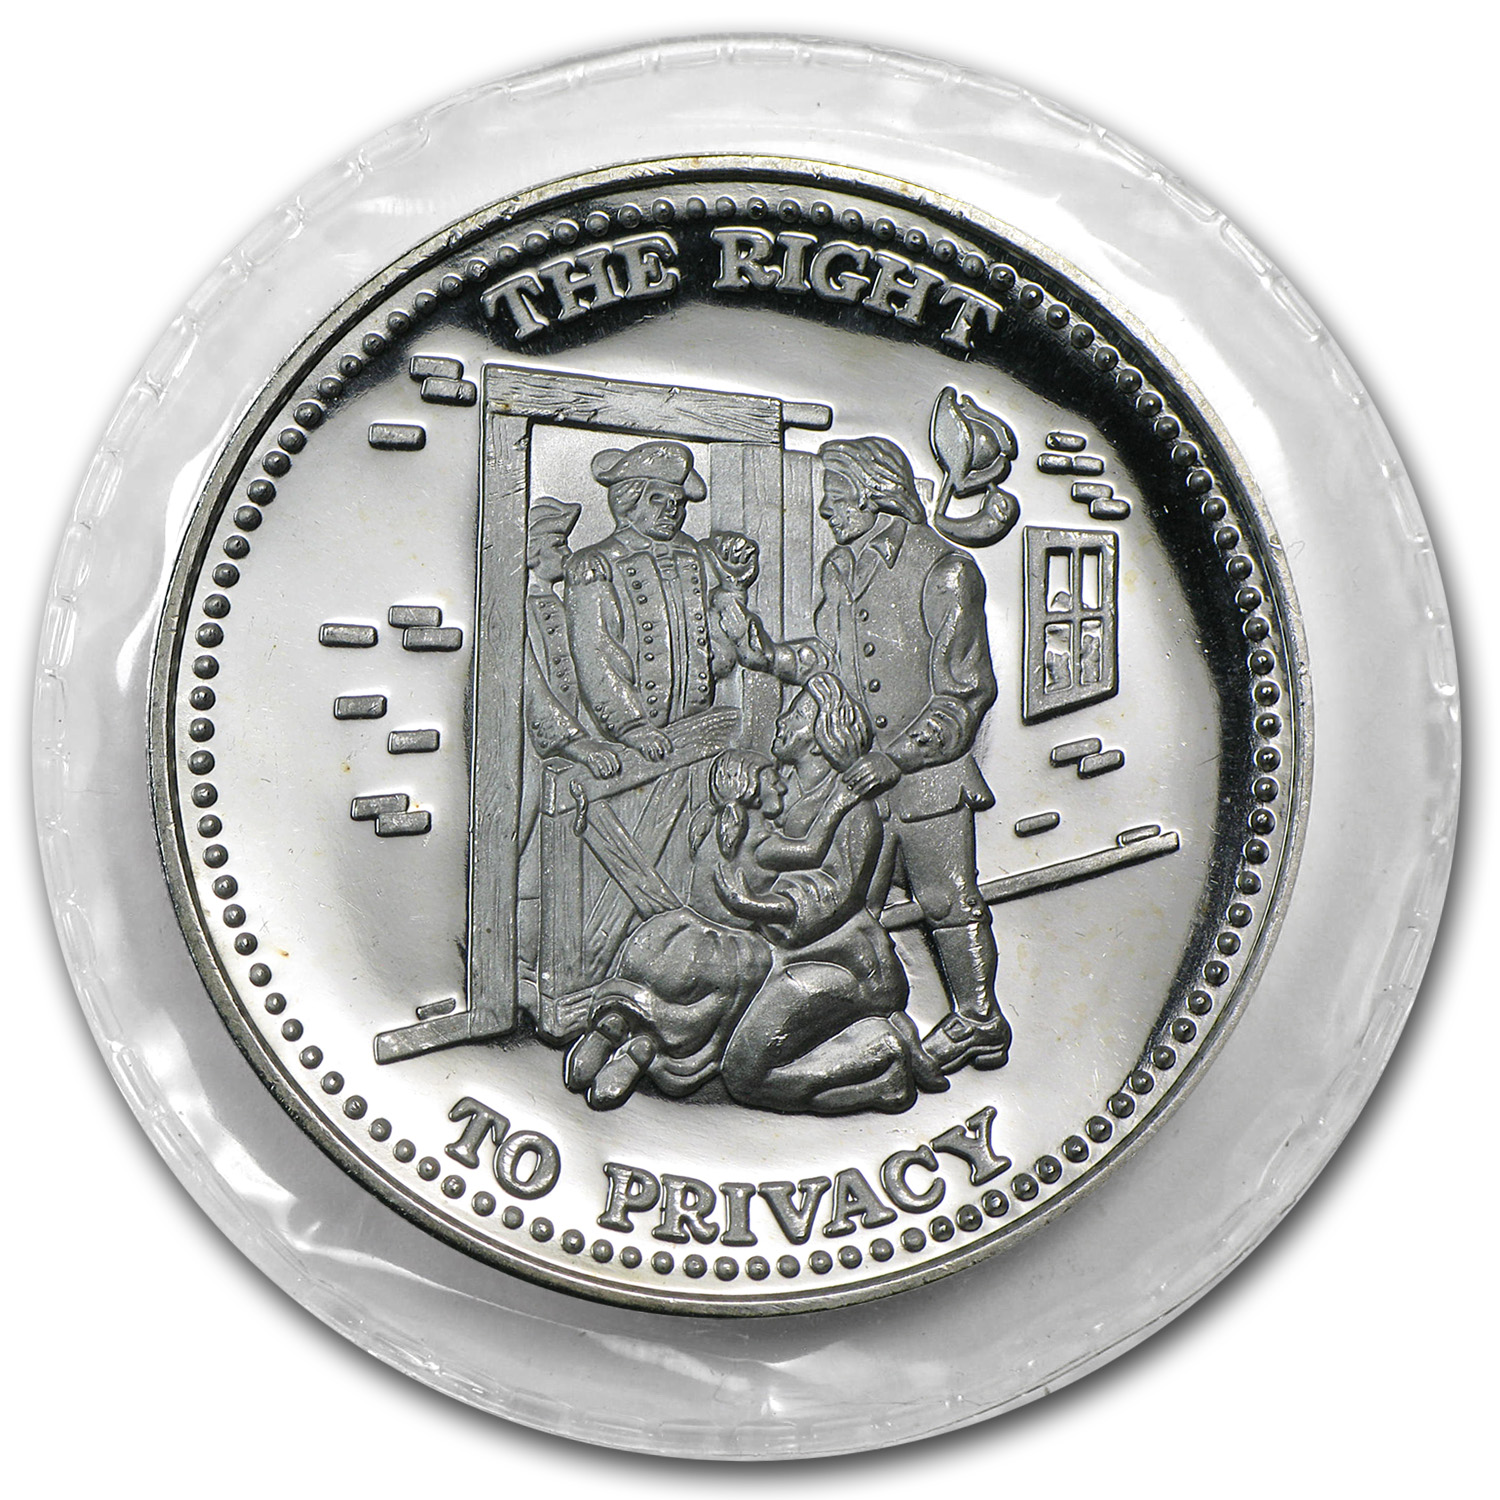 1 oz Silver Round - Johnson Matthey (Sealed, Right to Privacy)